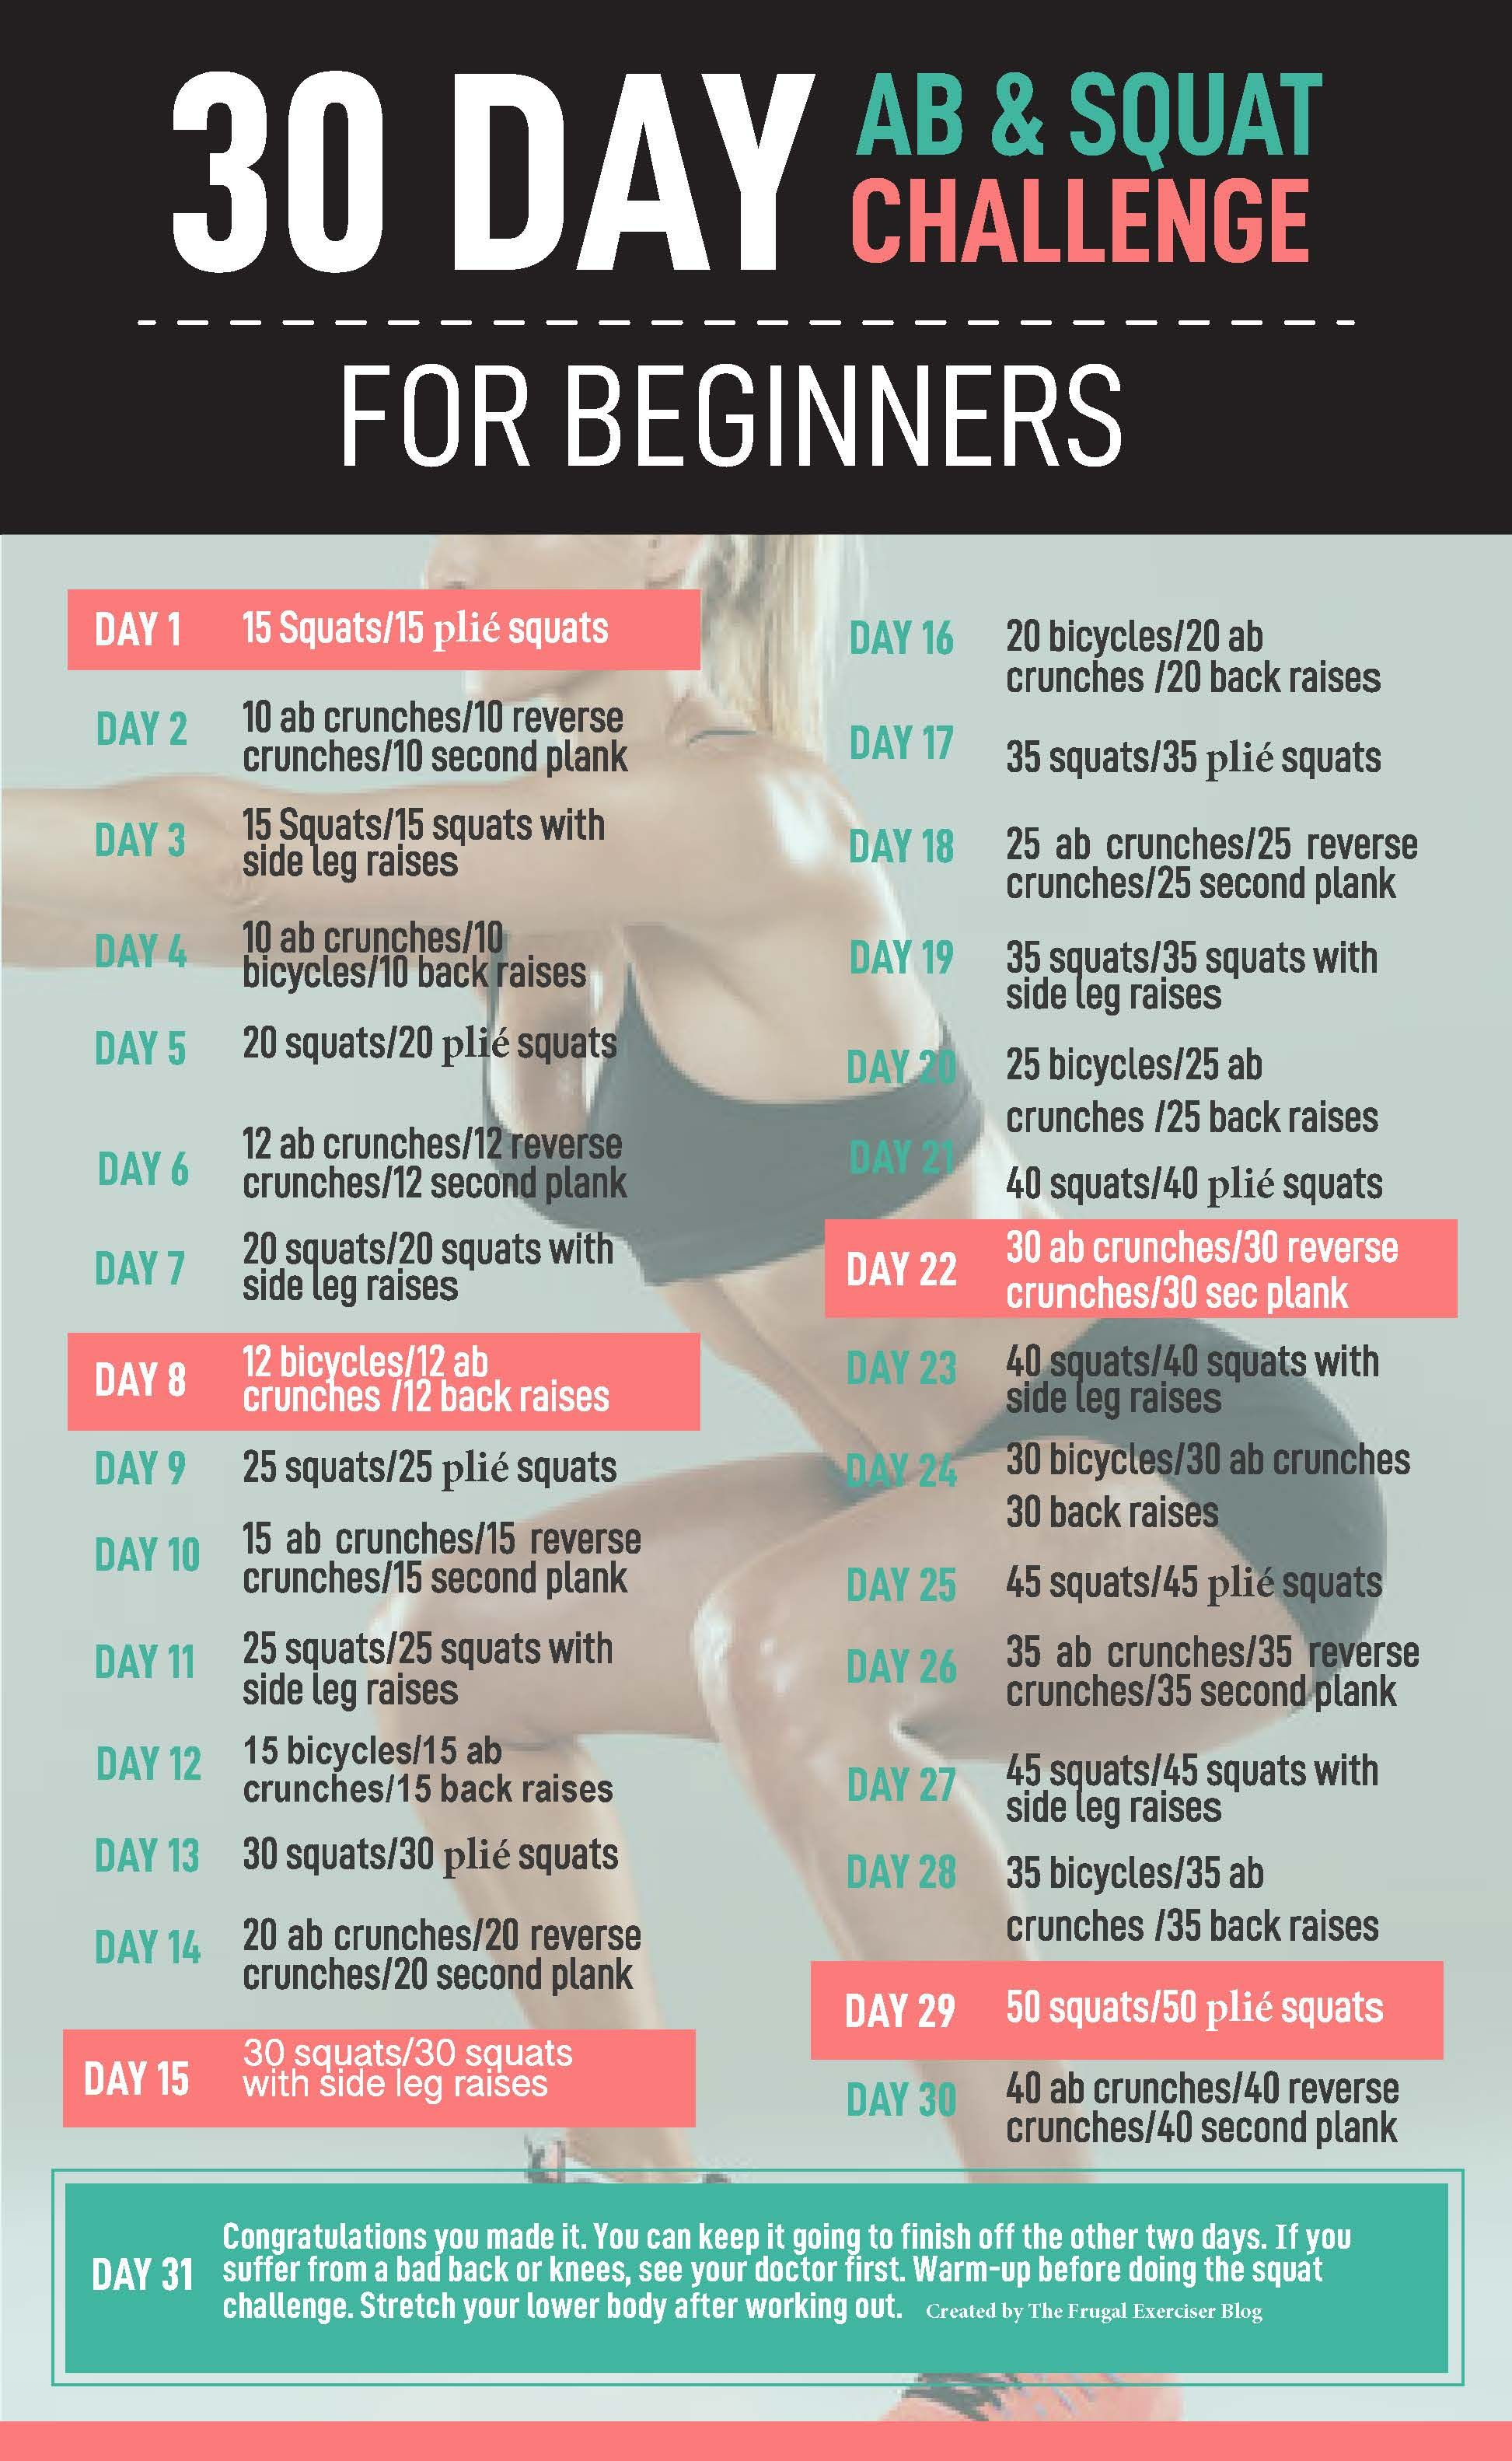 30-day ab and squat challenge for beginners